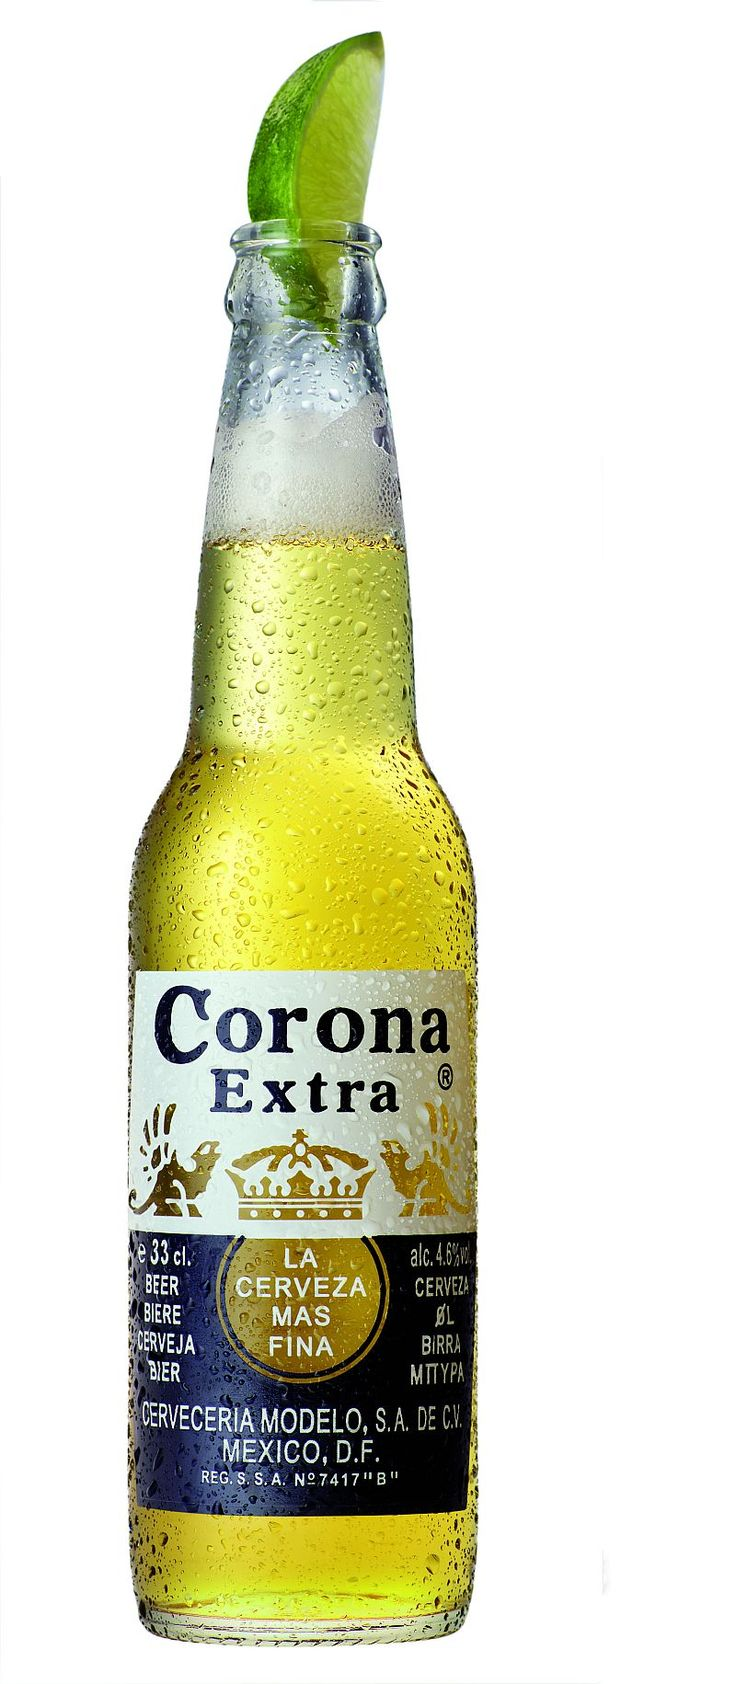 Google Image Result for http://alccorting.files.wordpress.com/2011/02/corona.jpg